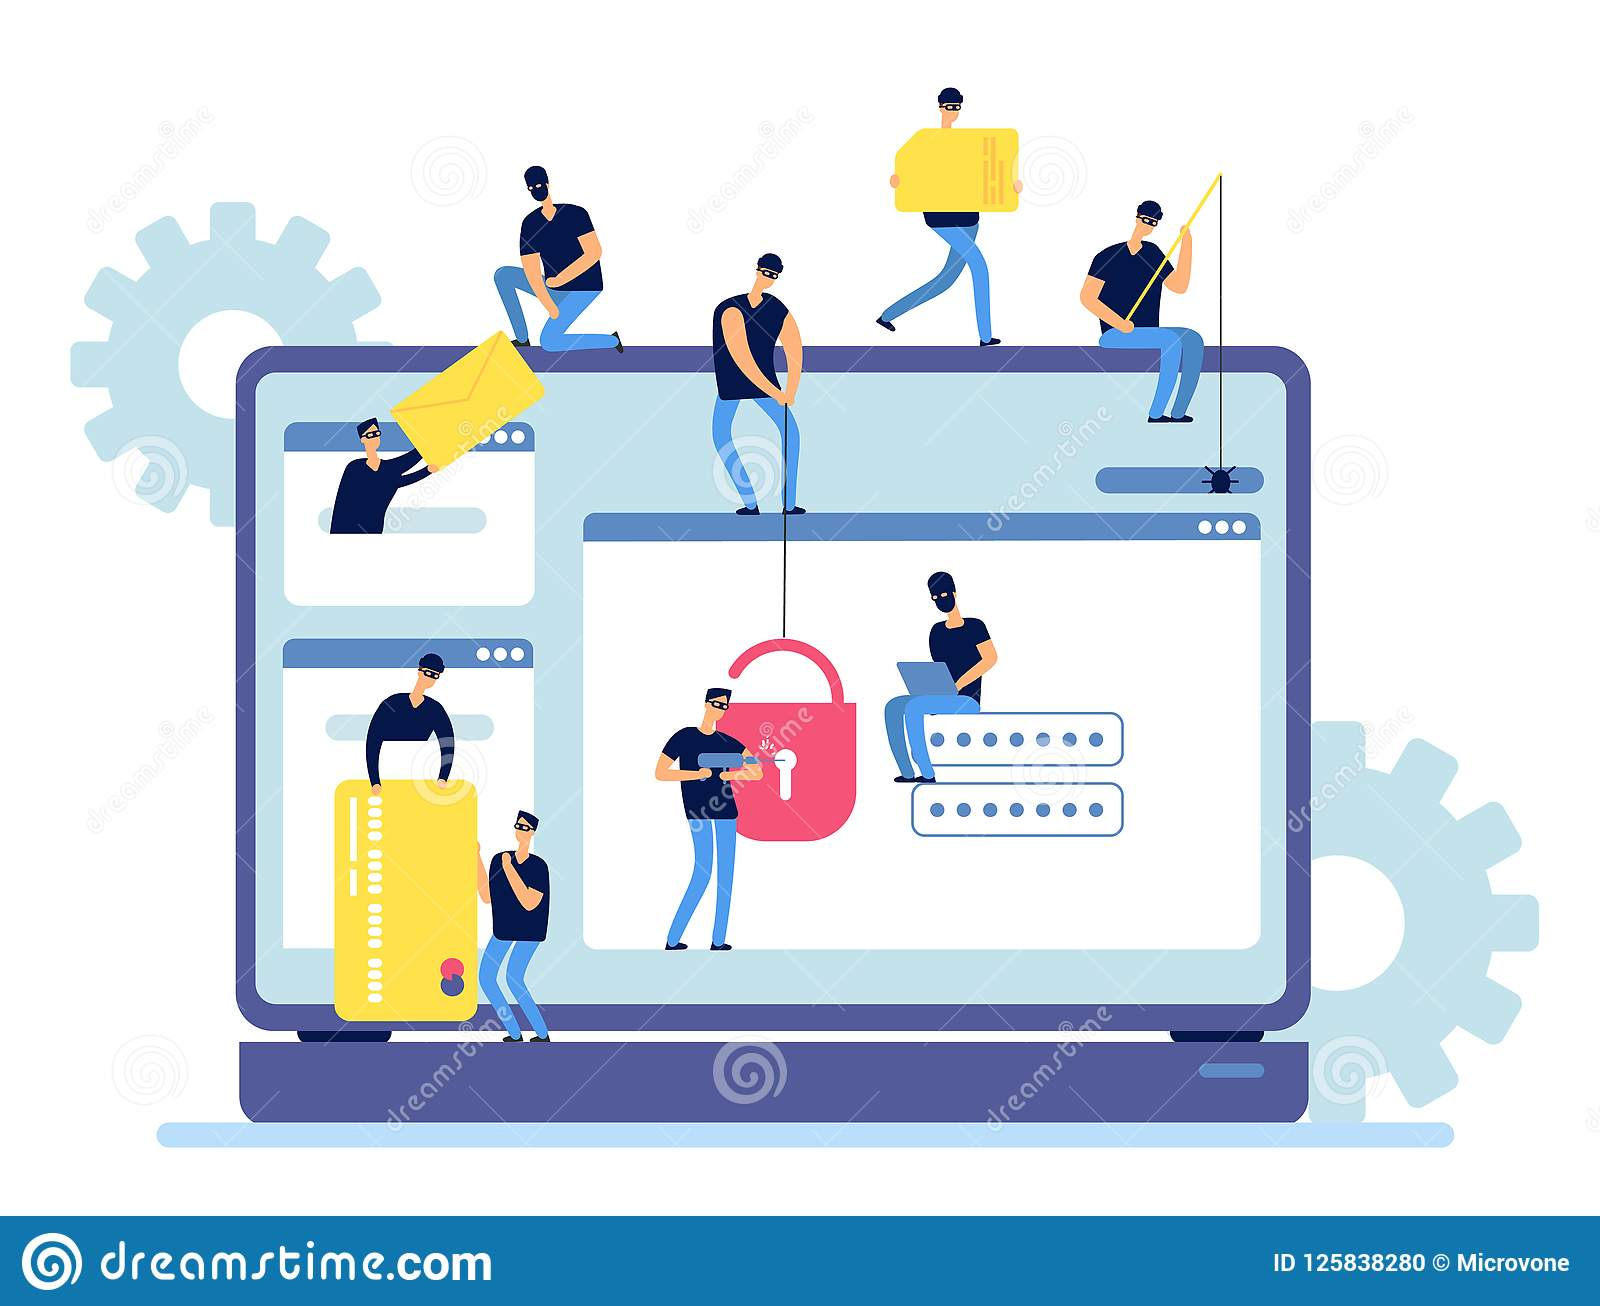 hacker stock illustrations 64 558 hacker stock illustrations vectors clipart dreamstime https www dreamstime com hackers steal information cyber criminals hack personal data computer web security hacker internet activity vector image125838280